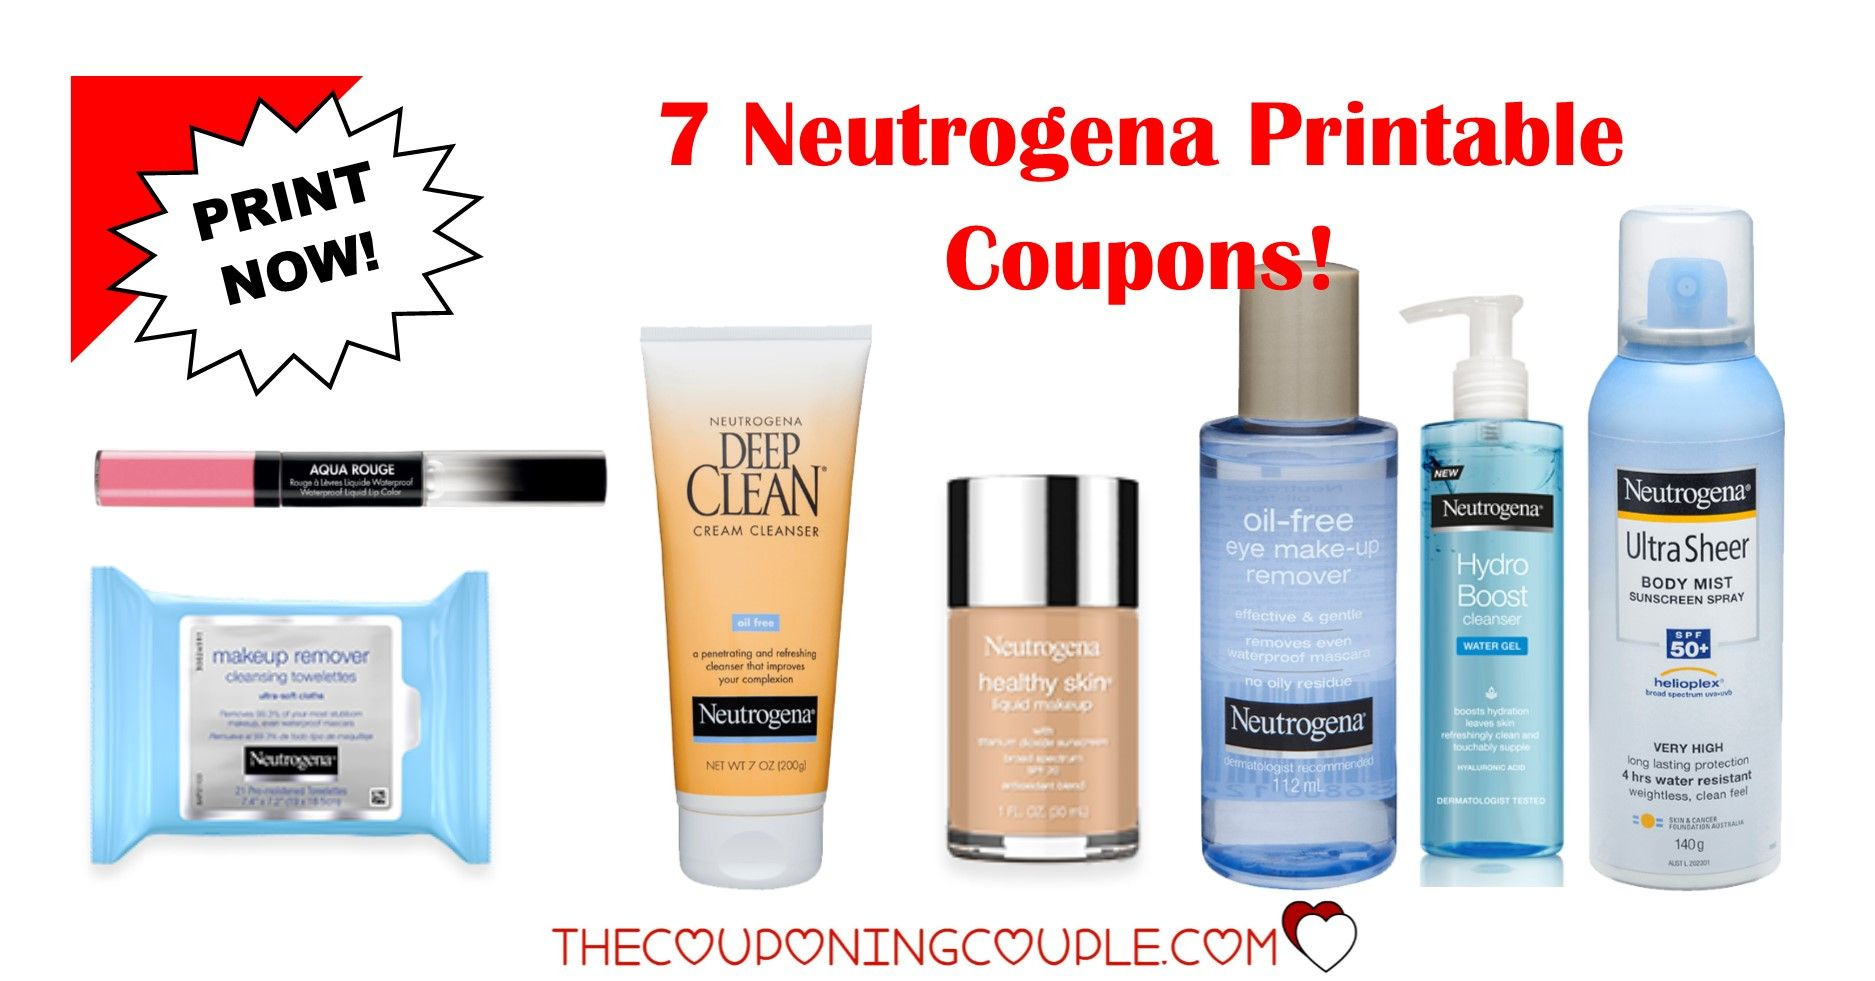 image relating to Neutrogena Printable Coupons identified as 5 Neutrogena Printable Discount coupons ~ $11.50 in just Discounts! PRINT